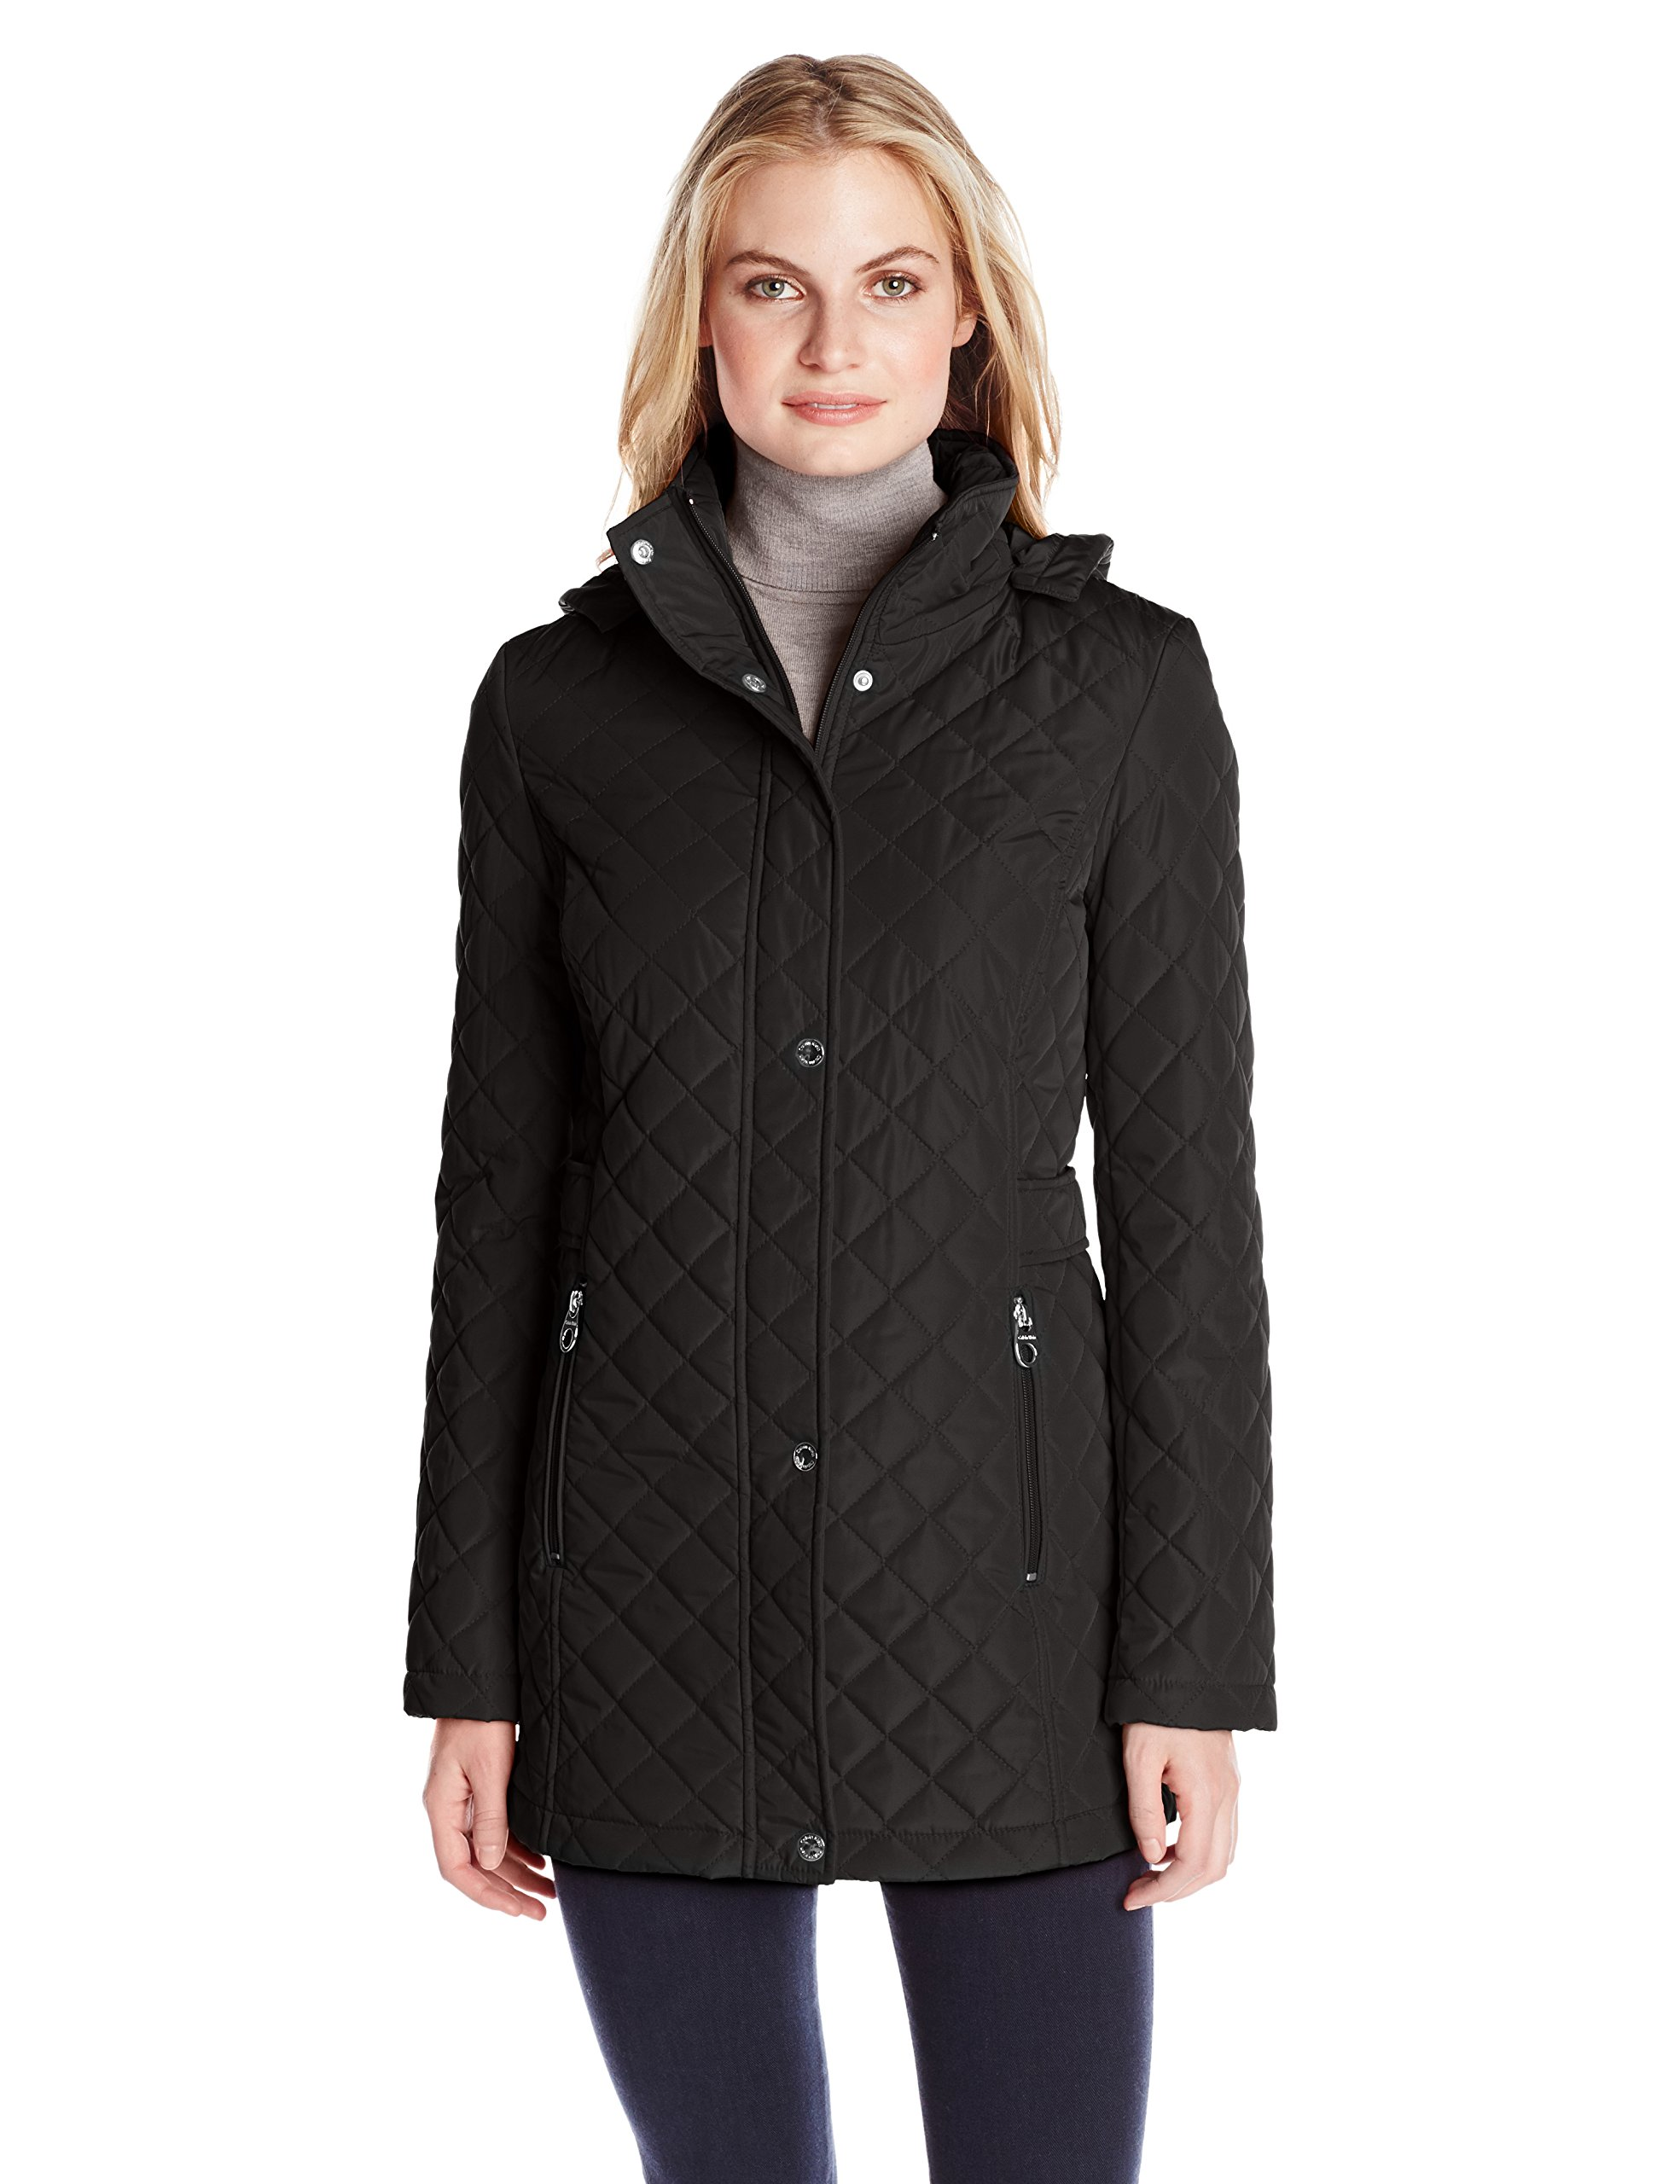 Calvin Klein Women's Classic Quilted Jacket with Side Tabs, Black, Medium by Calvin Klein